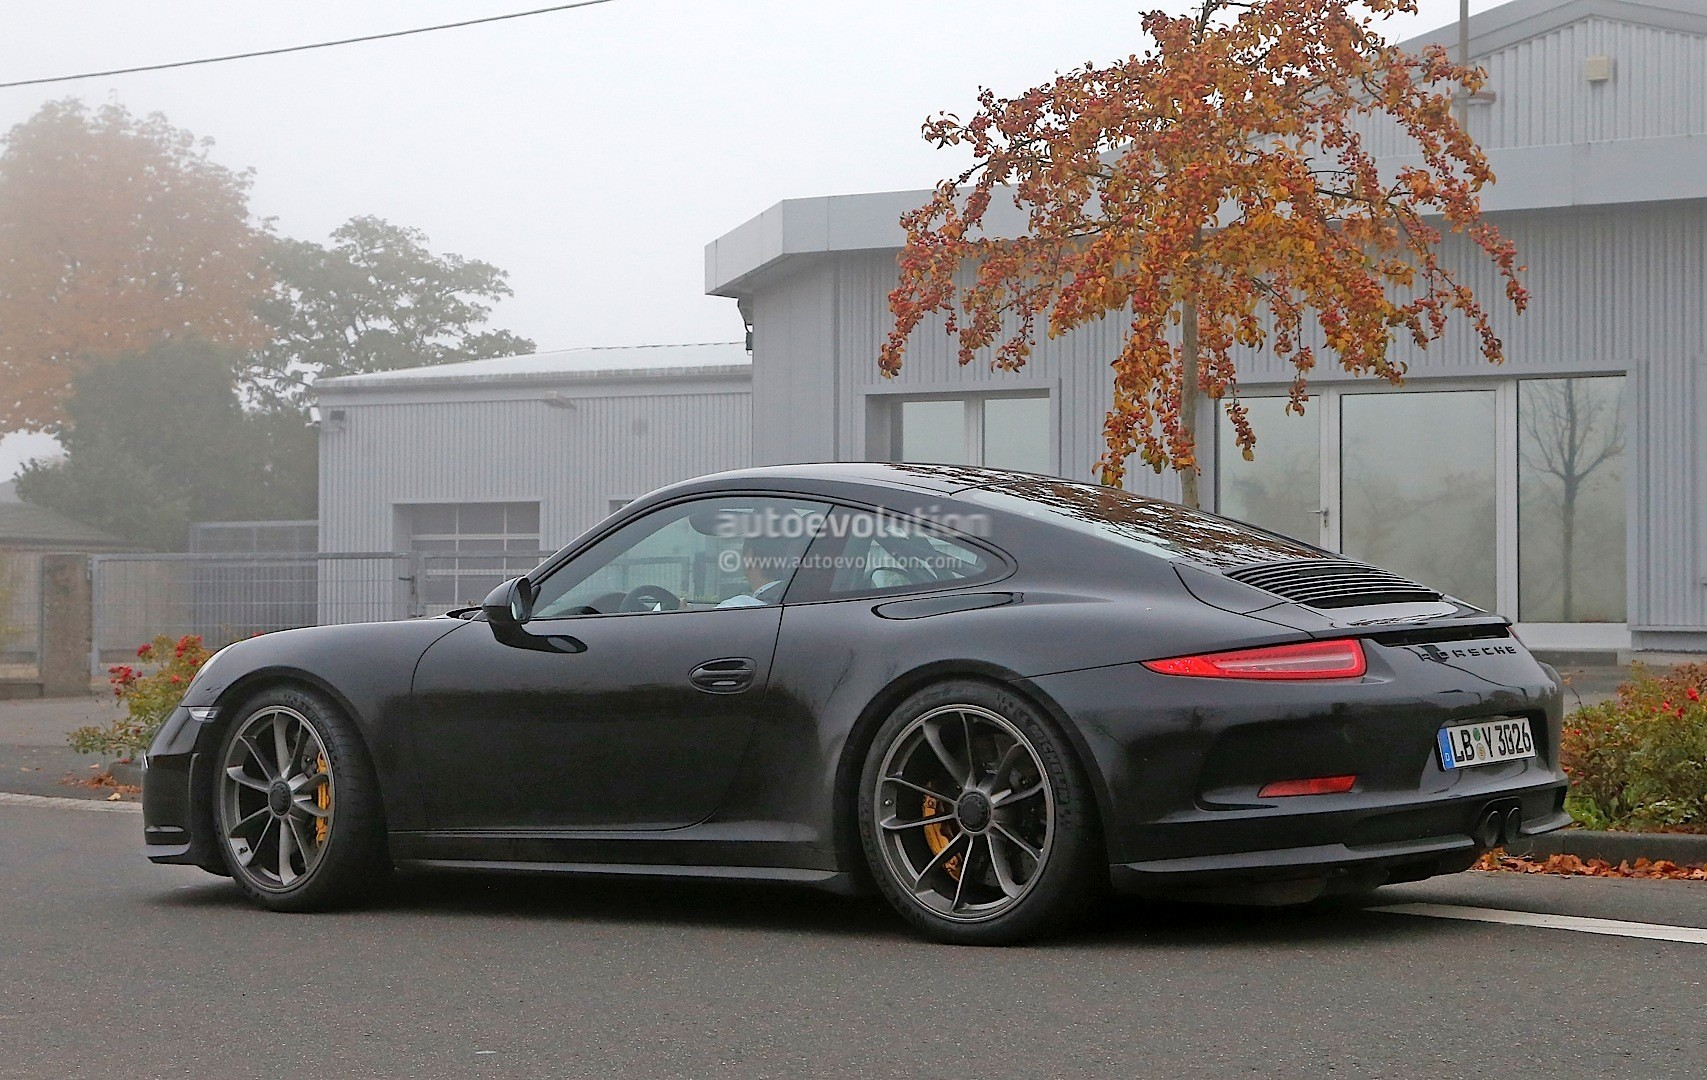 Porsche R Spied For The First Time Gt Engine With A Manual in addition Large A Bde Fc Eb Bc B A D C F also  also Steffi Graf Mit Tracy Austin C Dbf besides Techart Porsche Spoilers. on porsche 911 carrera 4 cabriolet